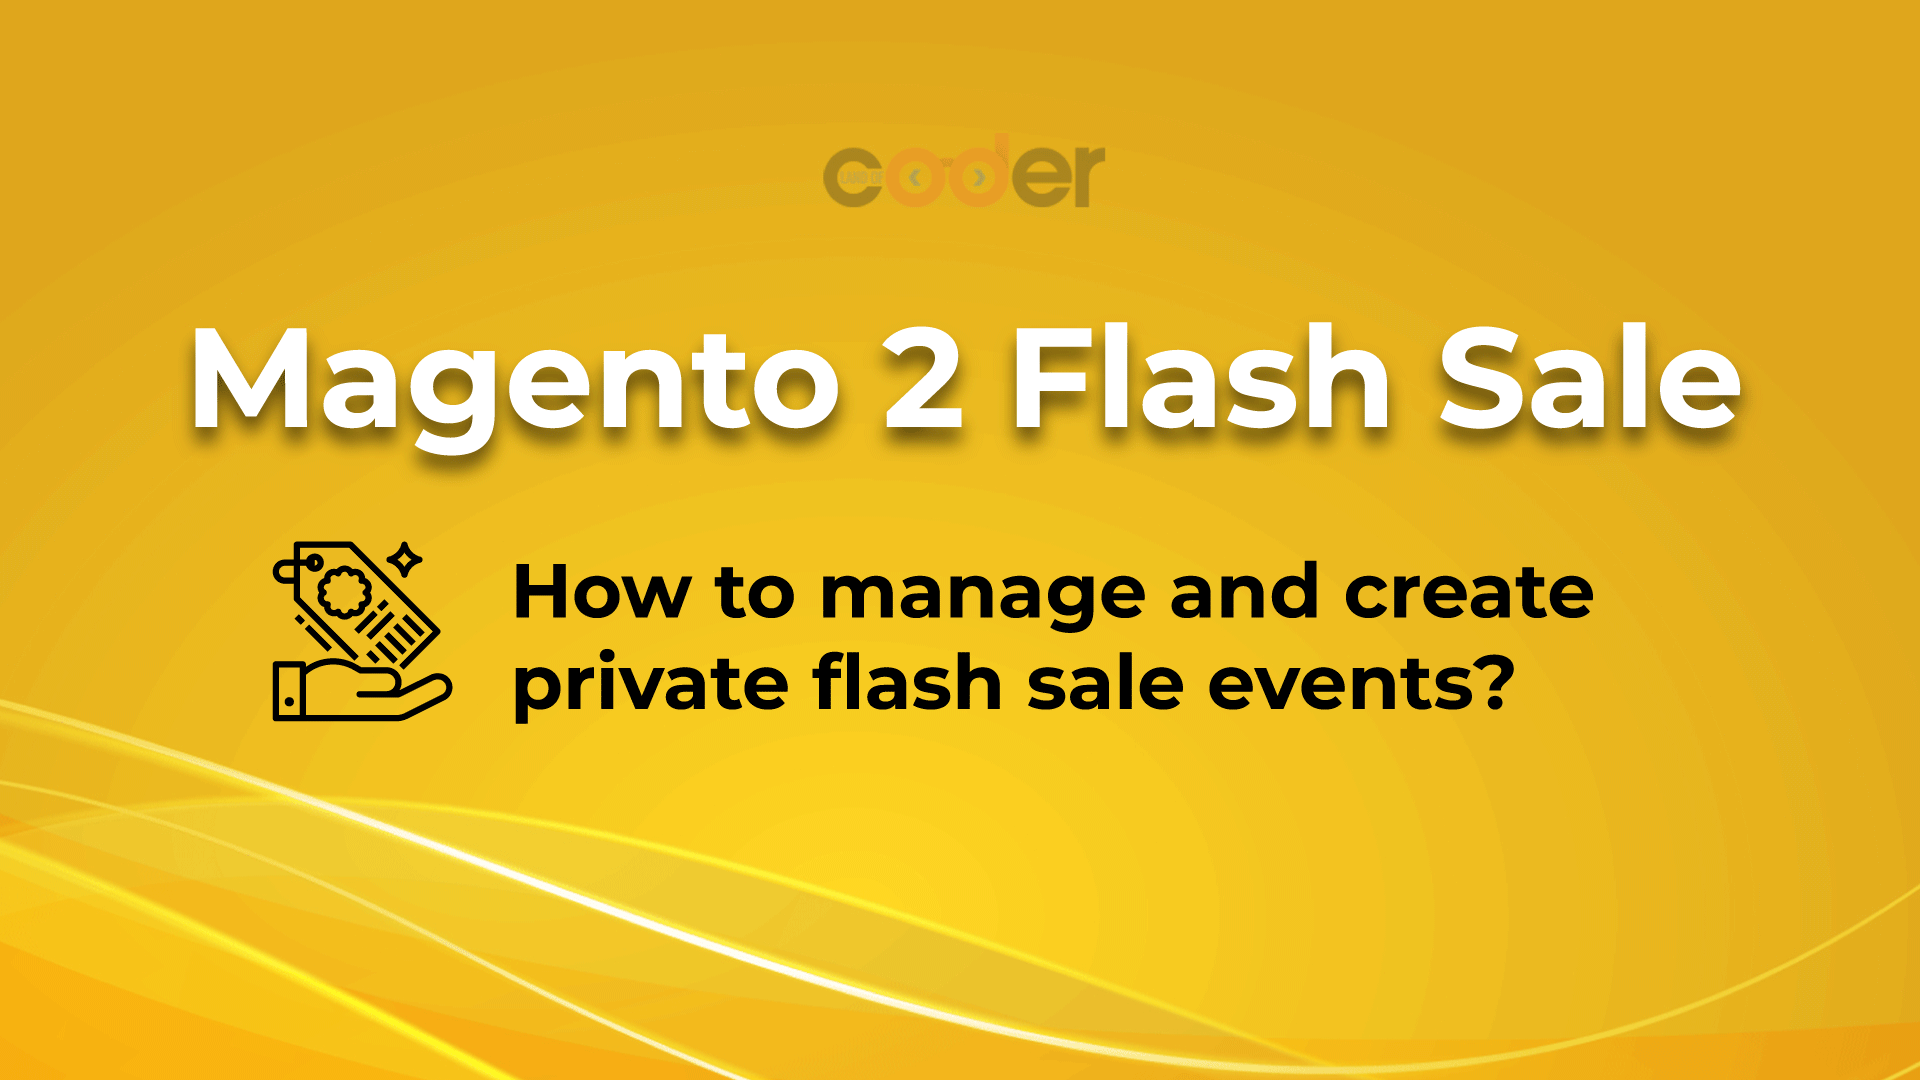 Magento Flash Sale Video Guide